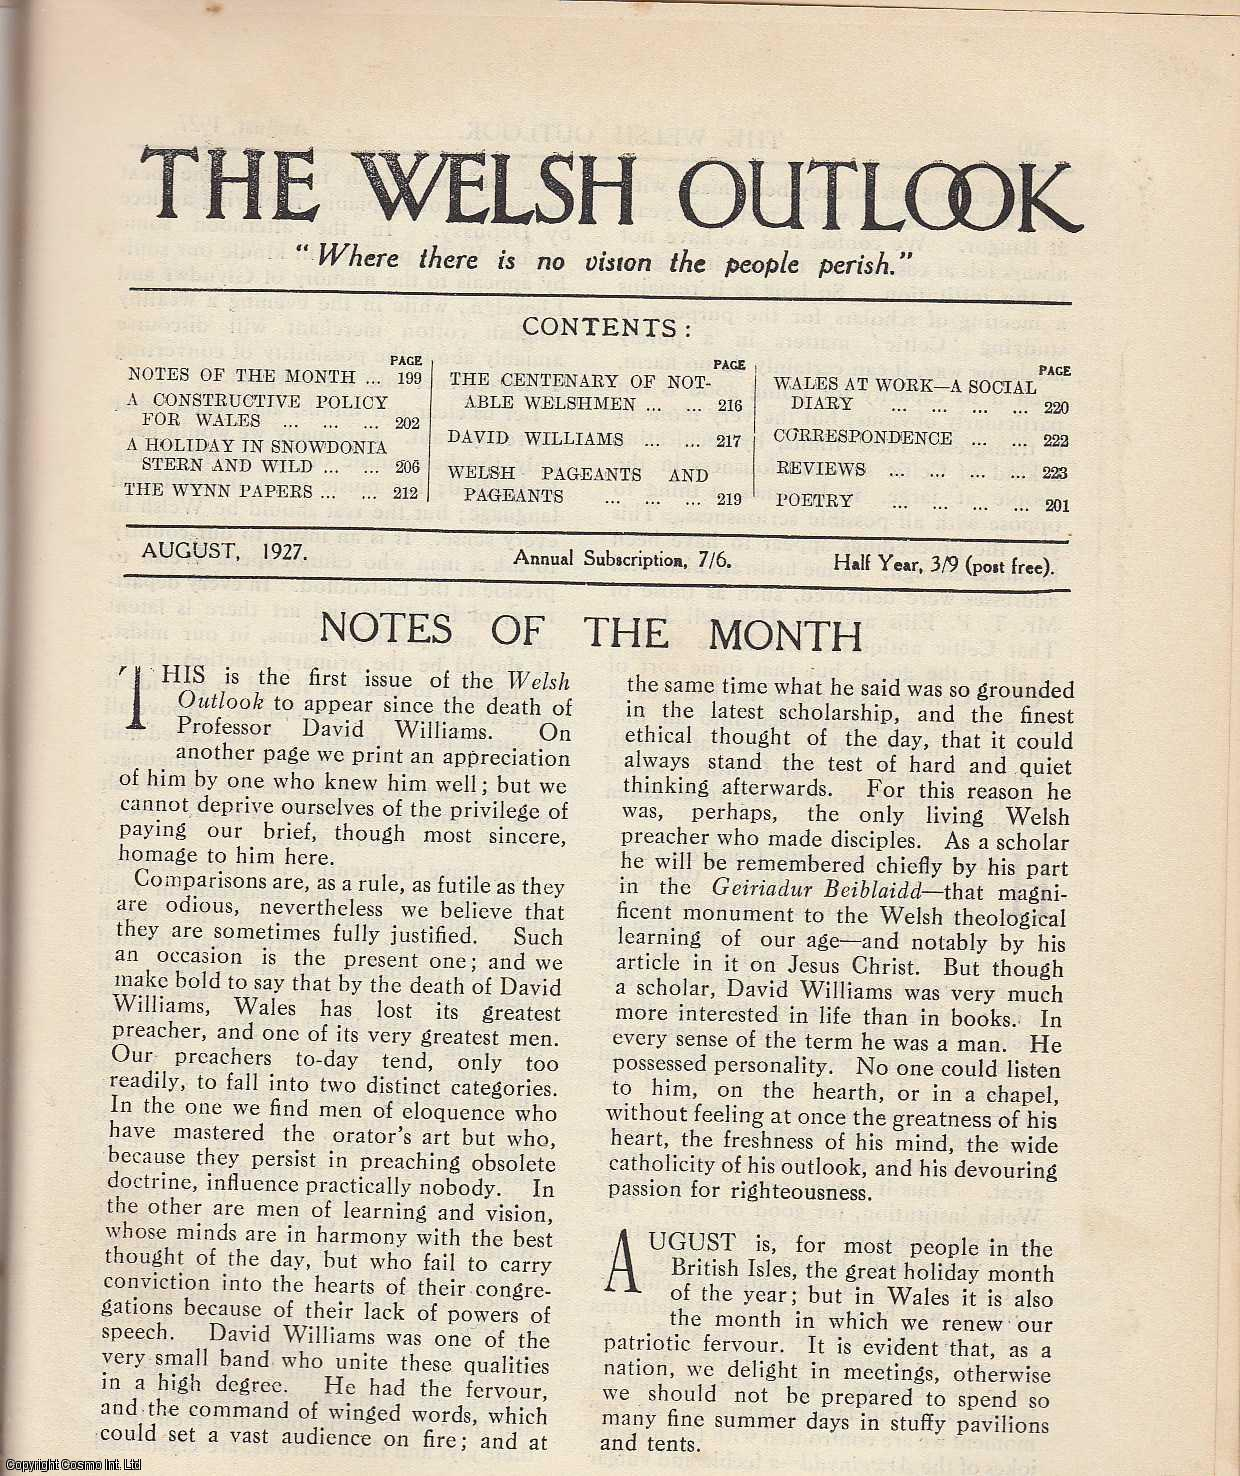 The Welsh Outlook. A Monthly Journal of National Social Progress. August, 1927. Contains; A Constructive Policy for Wales by T.P. Ellis; A Holiday in Snowdonia Stern and Wild by Uwchaled; The Wynn Papers by Prof. J.F. Rees; The Centenary of notable Welshmen by Rev. T. Mardy Rees; David Williams, 1877-1927: An Appreciation by Rev. G.A. Edwards; Welsh Pageants and Pageants by Alfred Perceval Graves; Wales at Work: A Social Diary by Rev. Gwilym Davies., Thomas Jones (Editor)